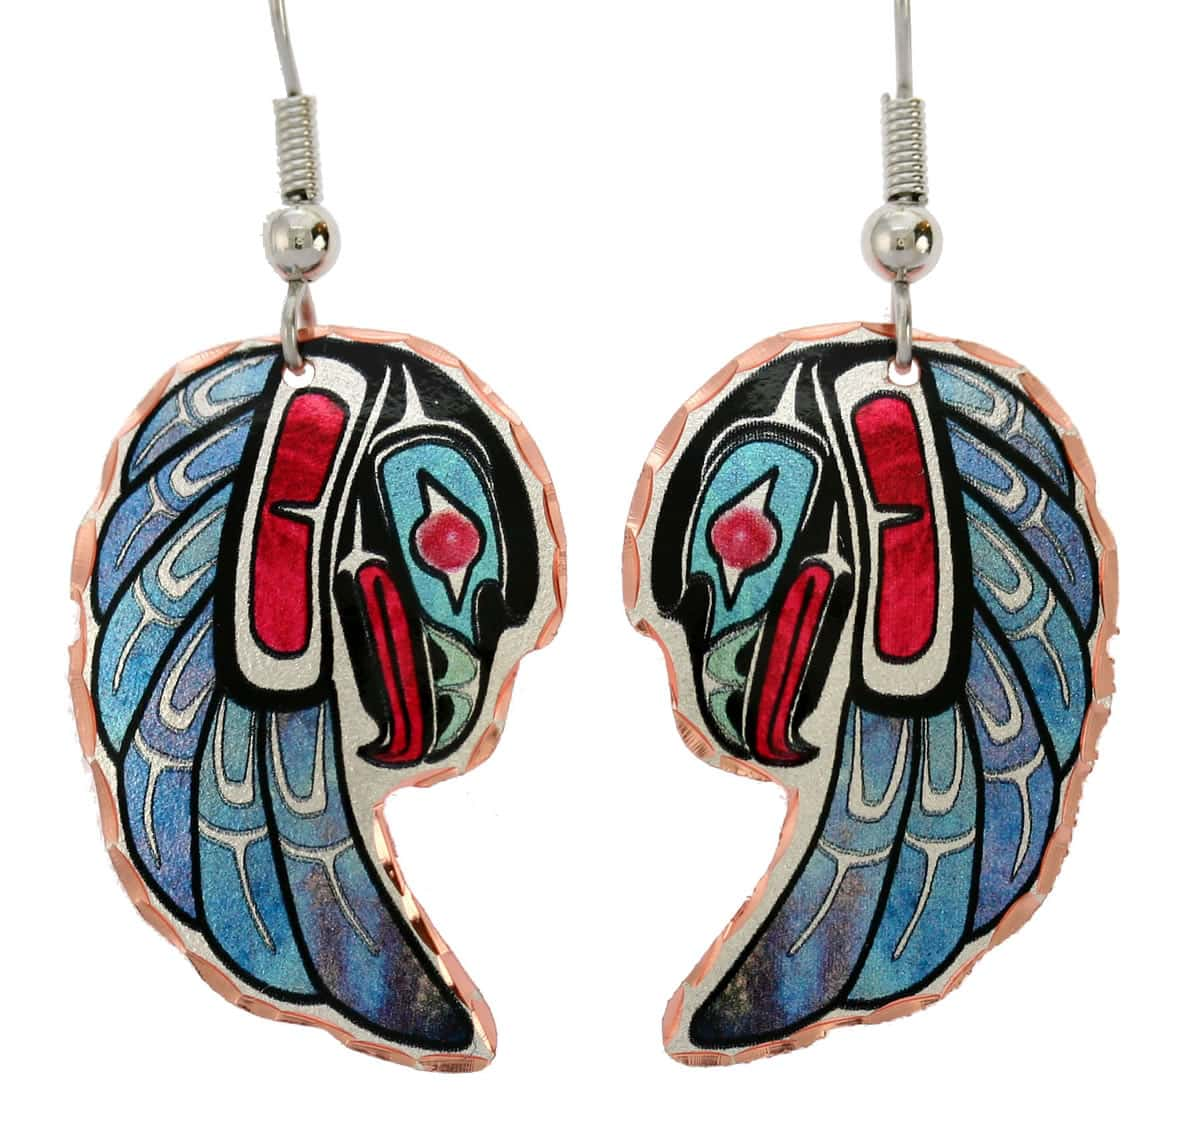 Northwest Native eagle earrings handmade in vibrant colors from copper